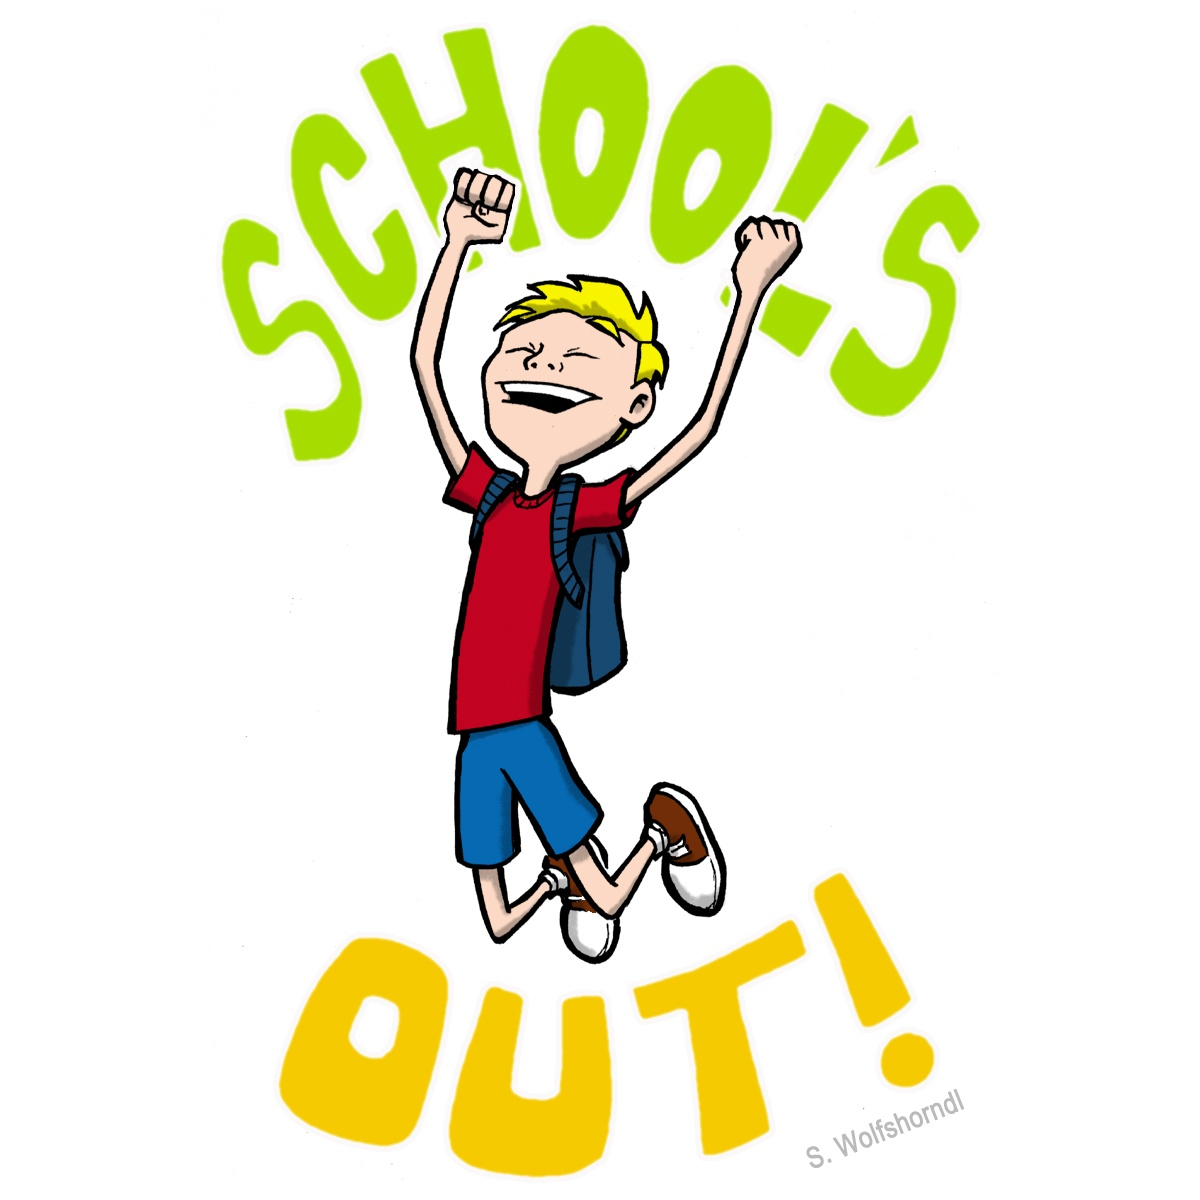 Last Day Of School Clipart Last Day Of S-Last Day Of School Clipart Last Day Of School Pto Today-4